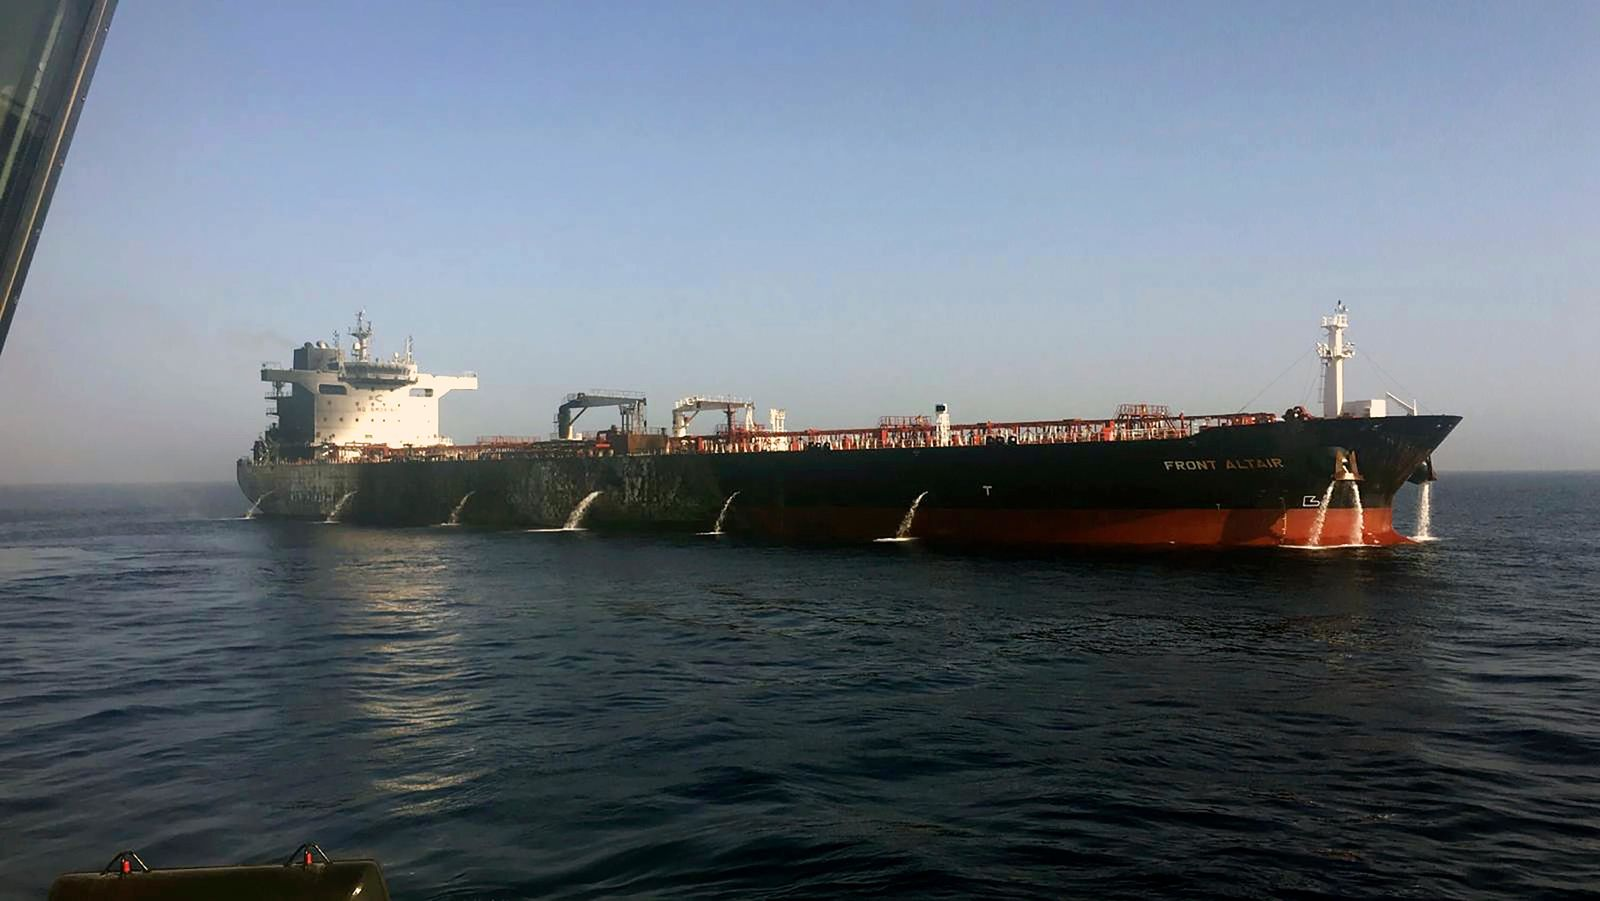 In this photo dated Thursday June 13, 2019, made available by the Norwegian shipowner Frontline, showing the crude oil tanker Front Altair after the fire aboard was extinguished onboard the Norwegian ship in the Gulf of Oman.  The U.S. Navy rushed to assist the stricken vessels in the Gulf of Oman, off the coast of Iran, as two oil tankers came under suspected attack amid heightened tension between Iran and the U.S. (Frontline via AP)